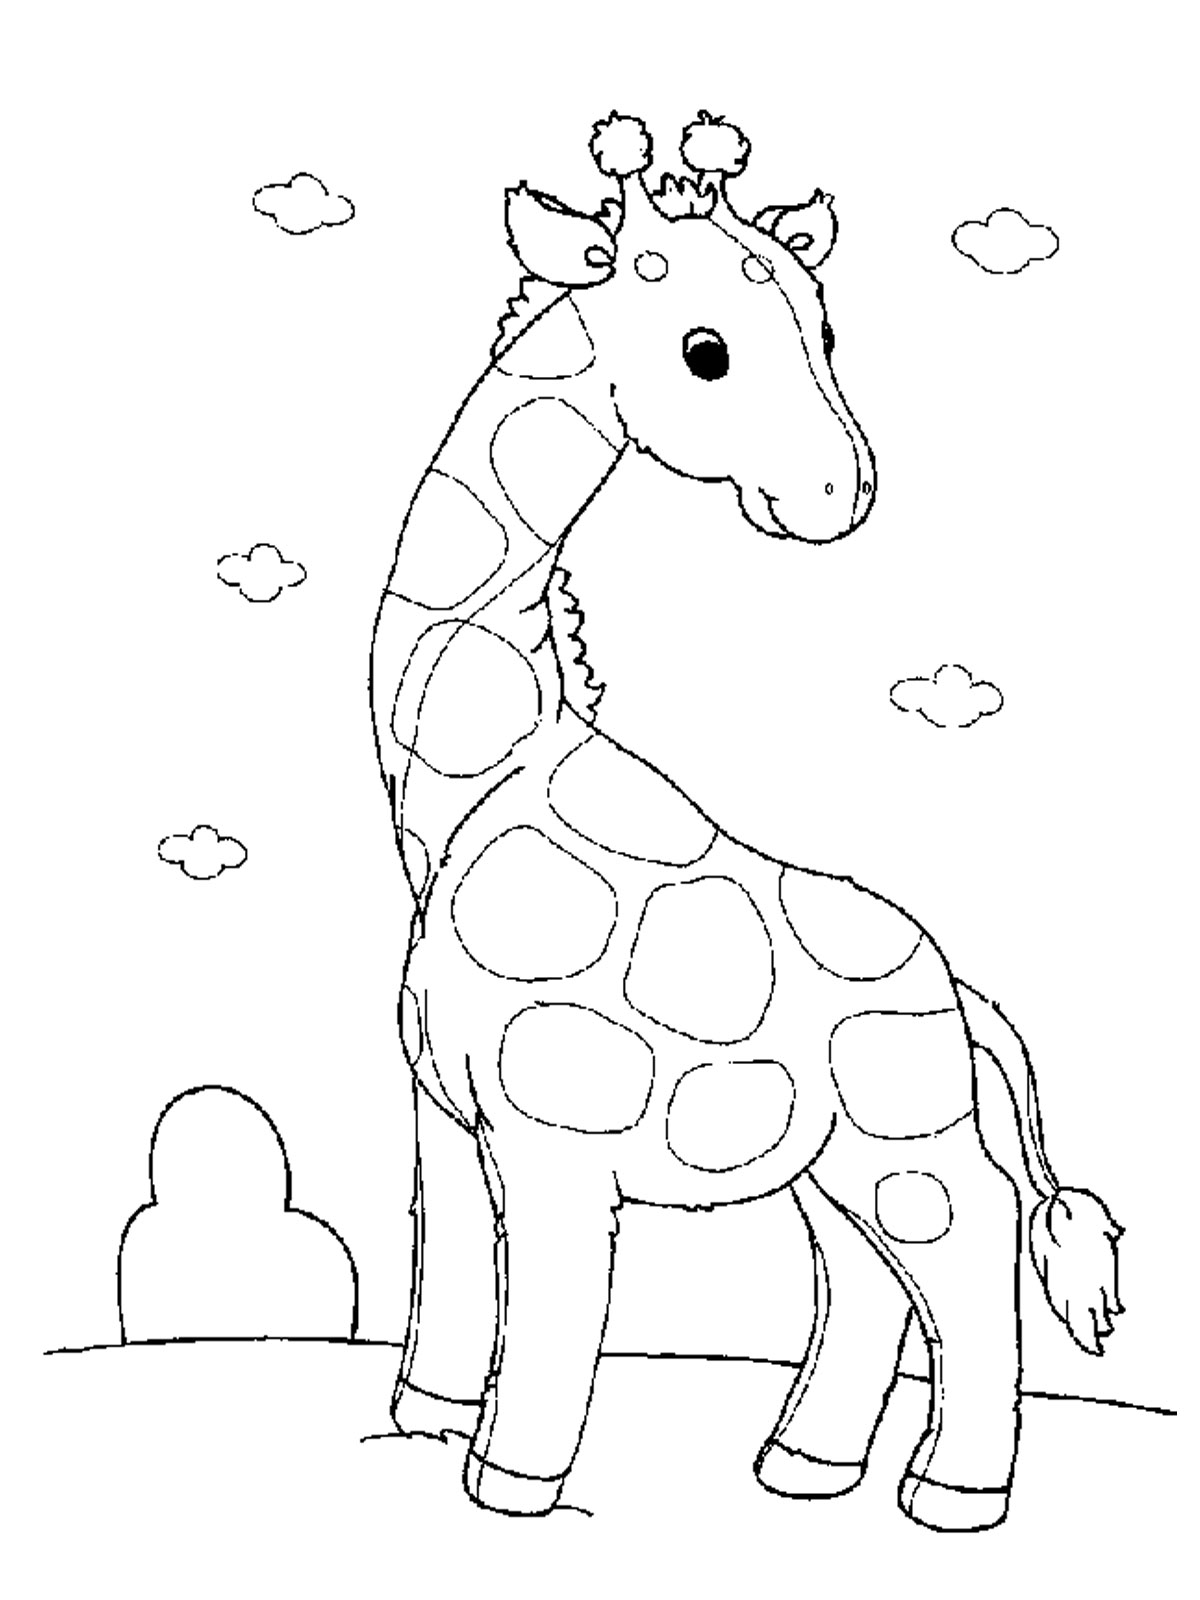 children coloring pages free animals - photo#17